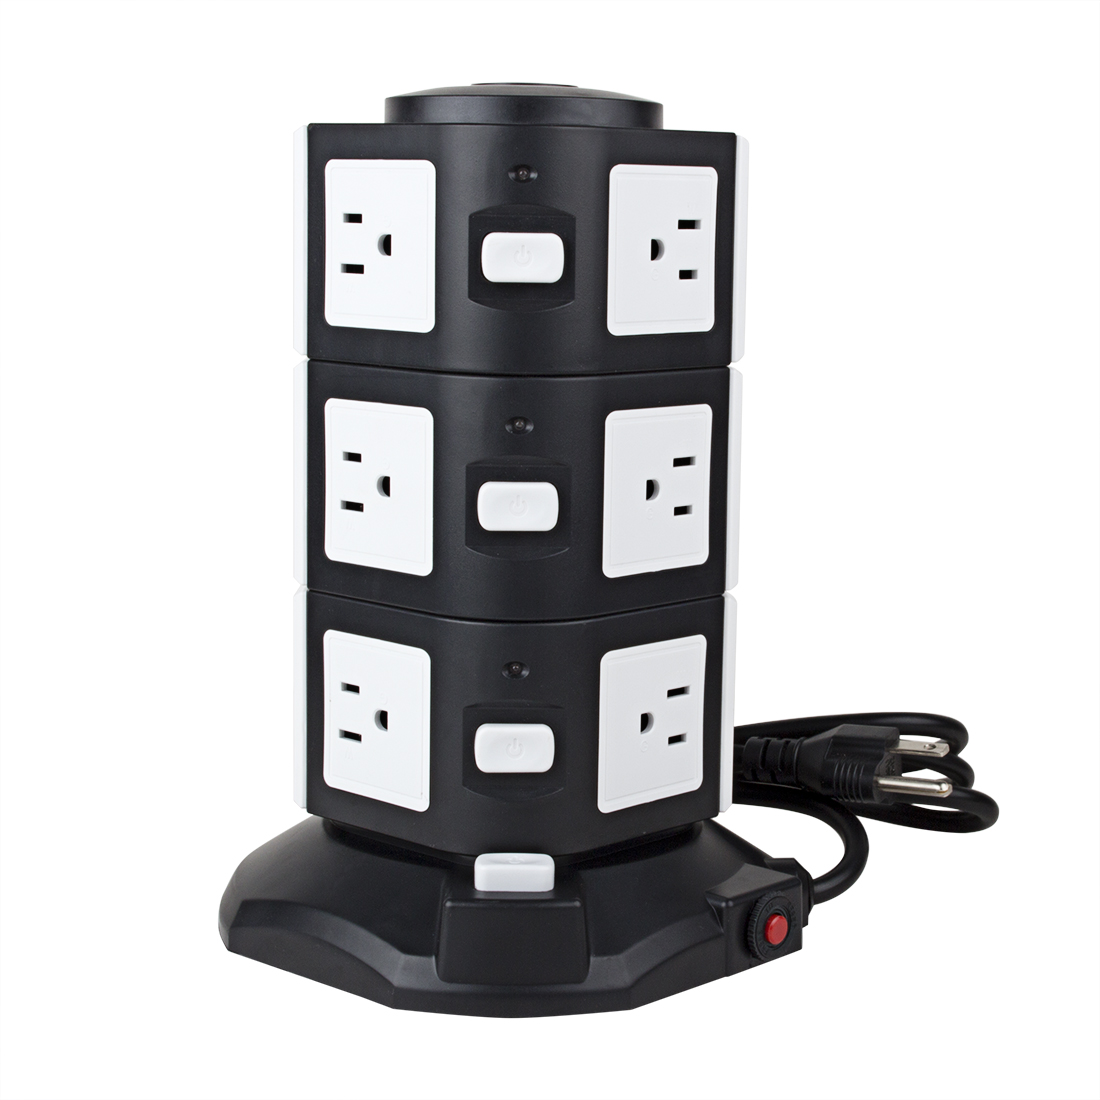 AC 110V US Plug Vertical Smart Socket 10 US Outlet 4 USB Ports 6 Ft Cable White Black